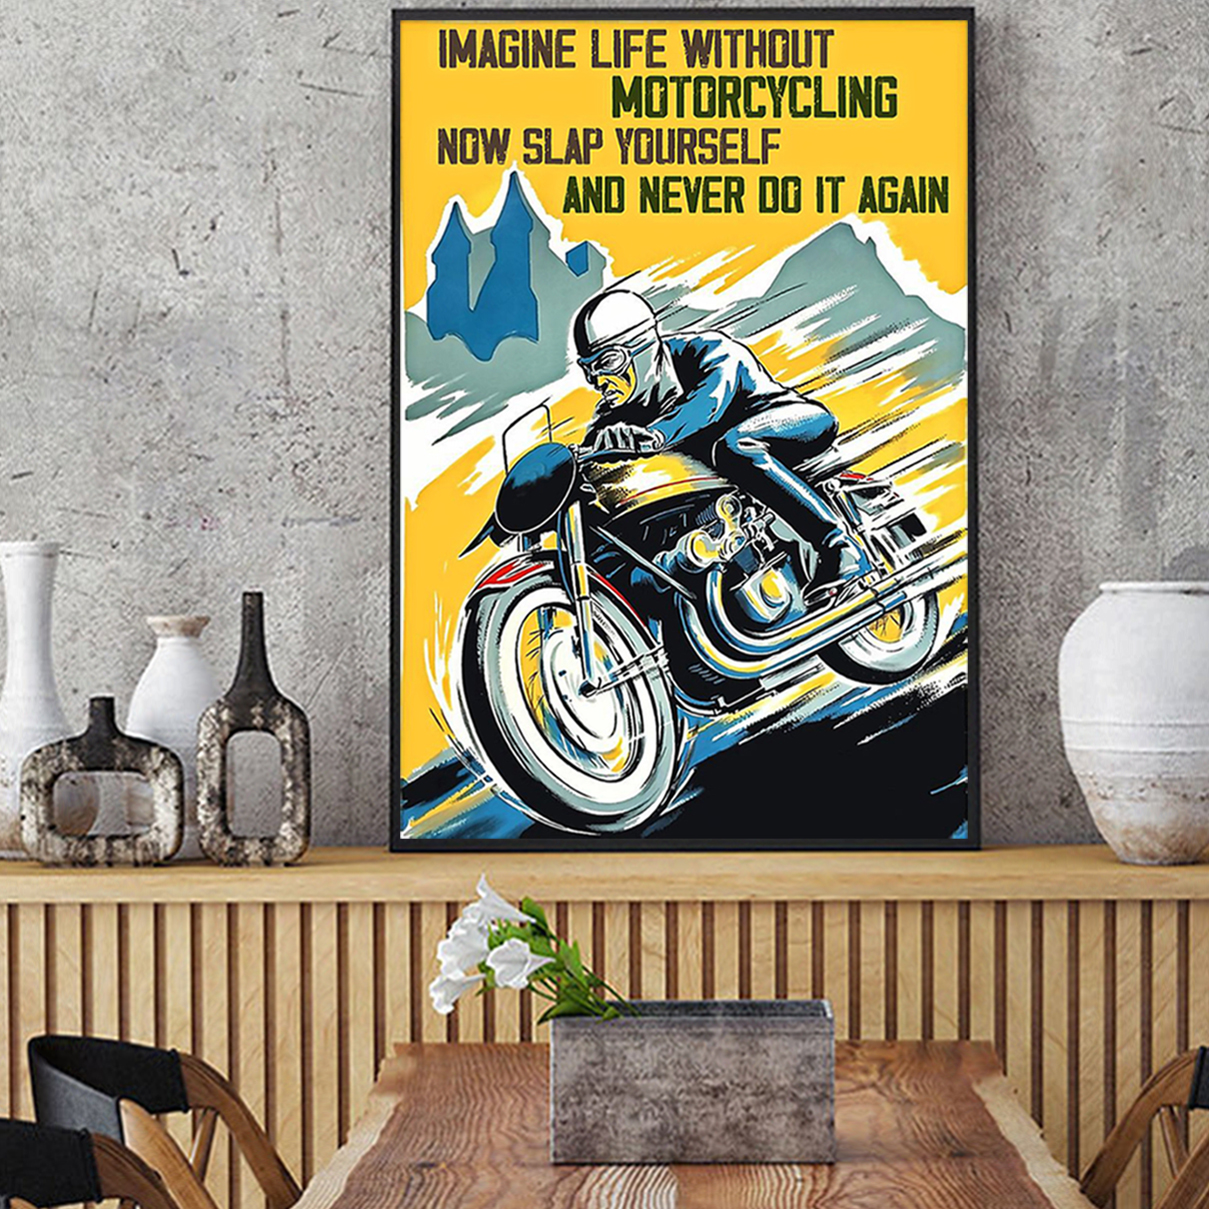 Imagine life without motorcycling now slap yourself and never do it again poster A2